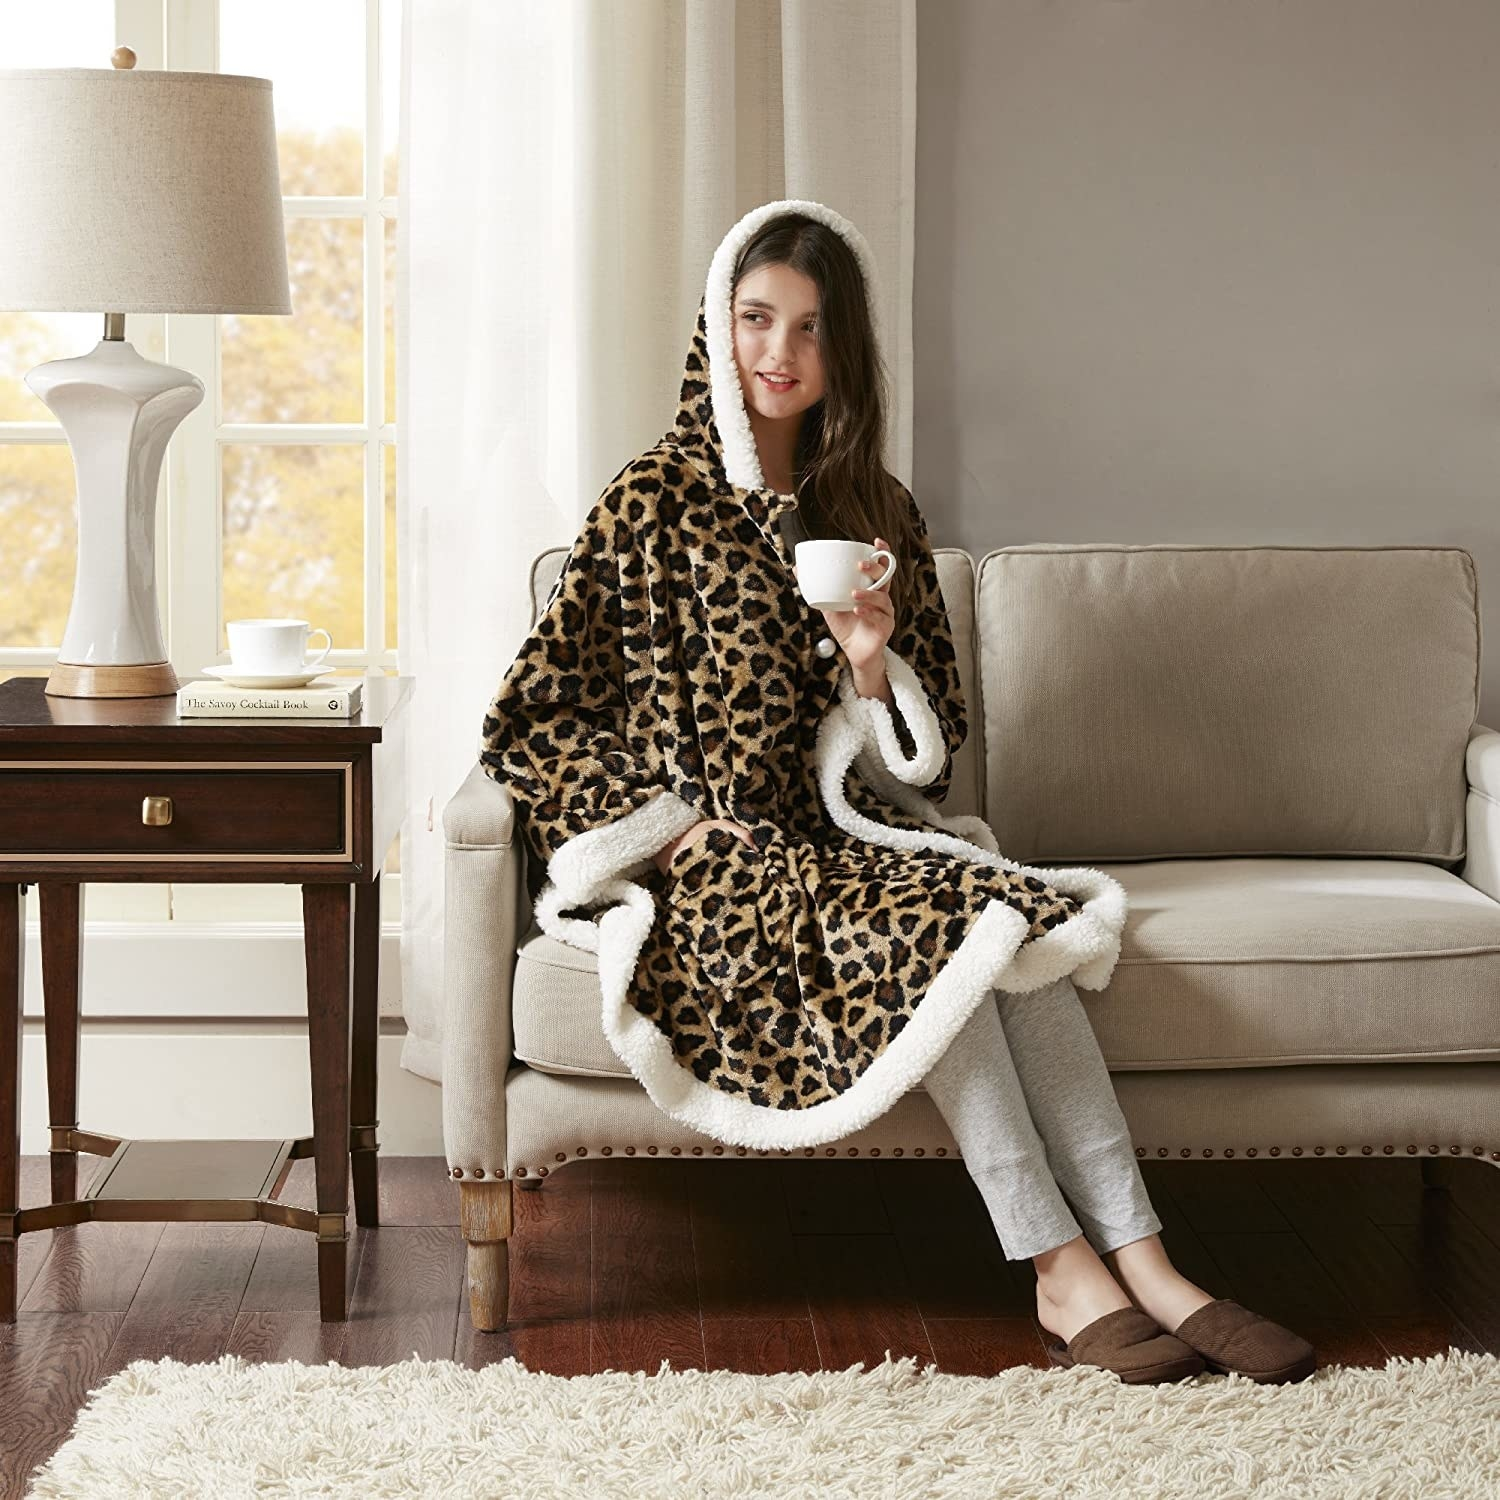 a model wearing the sherpa blanket in leopard print